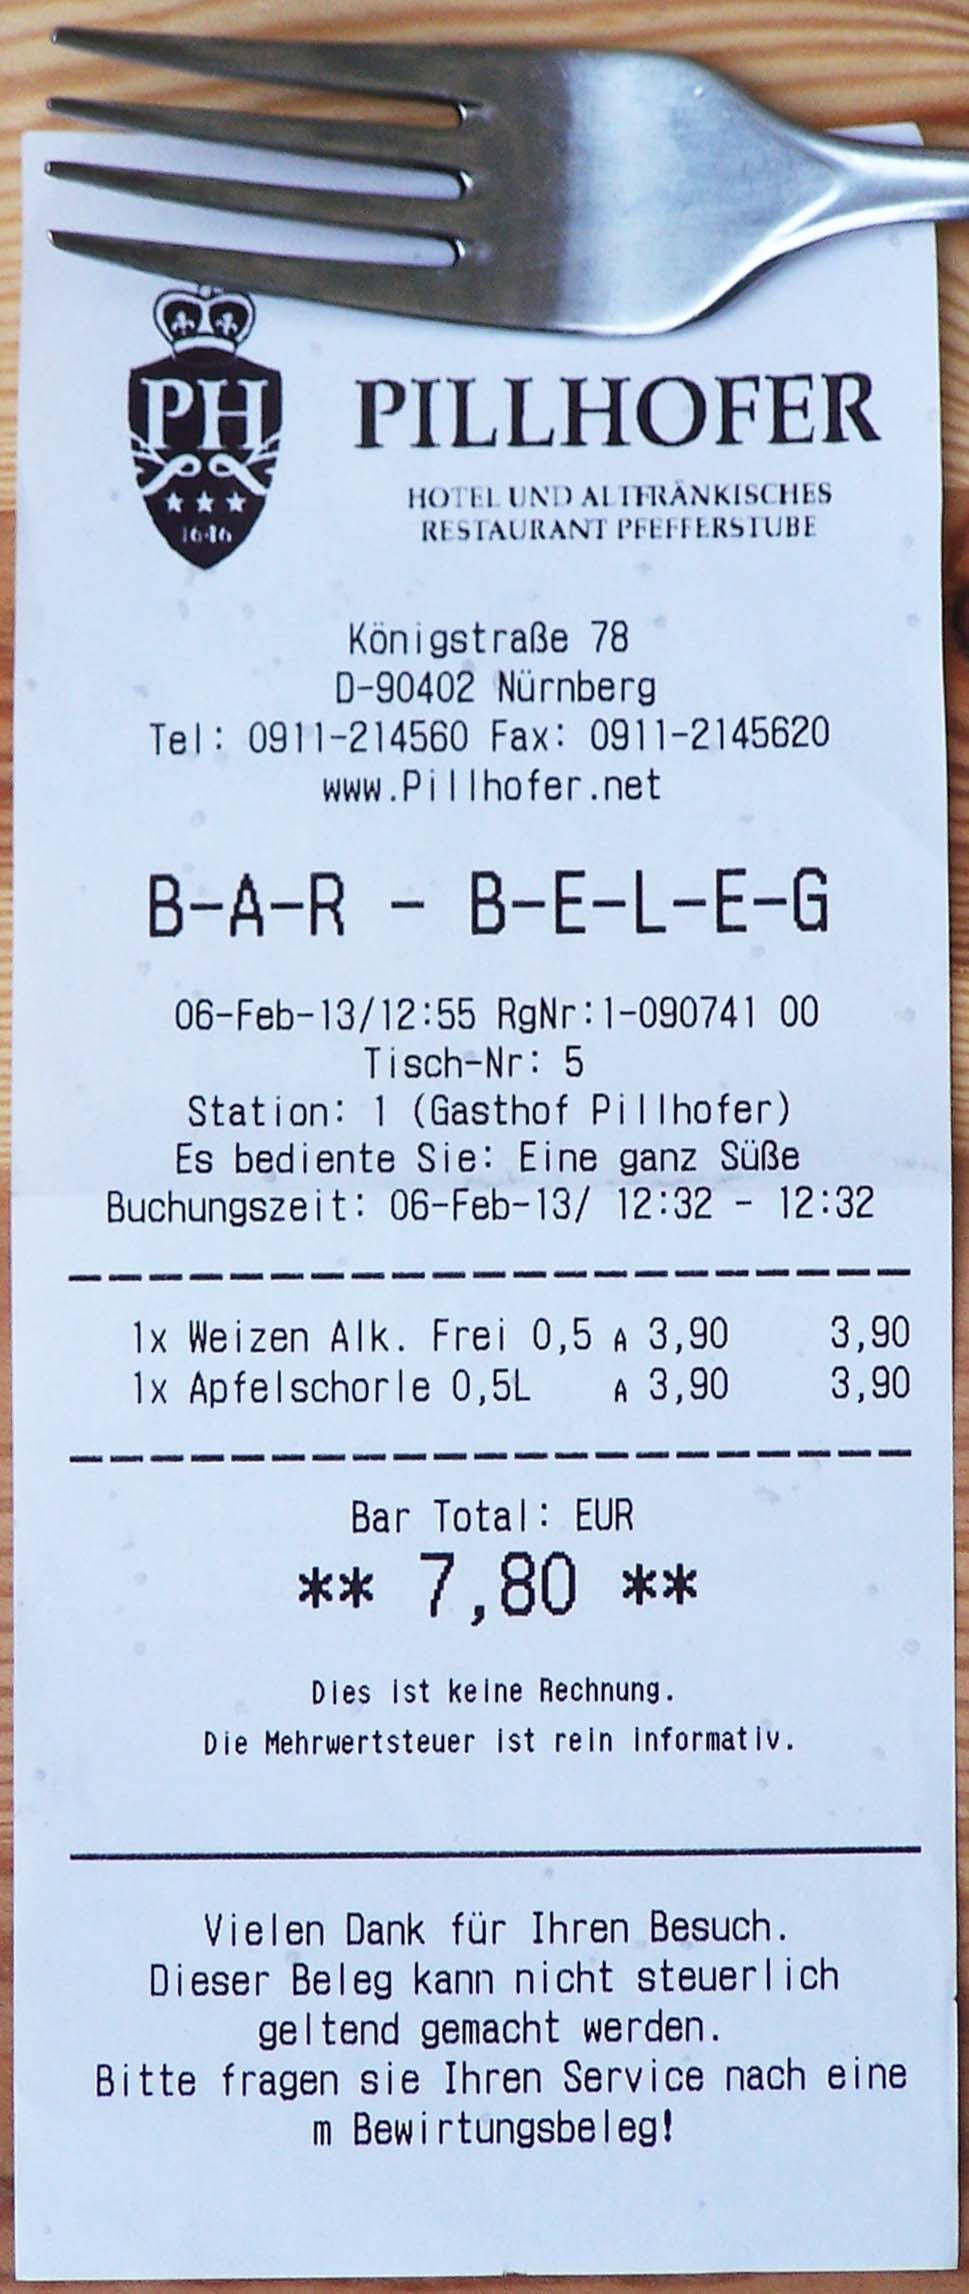 Bar-Beleg Gasthof Pillhofer, Nürnberg